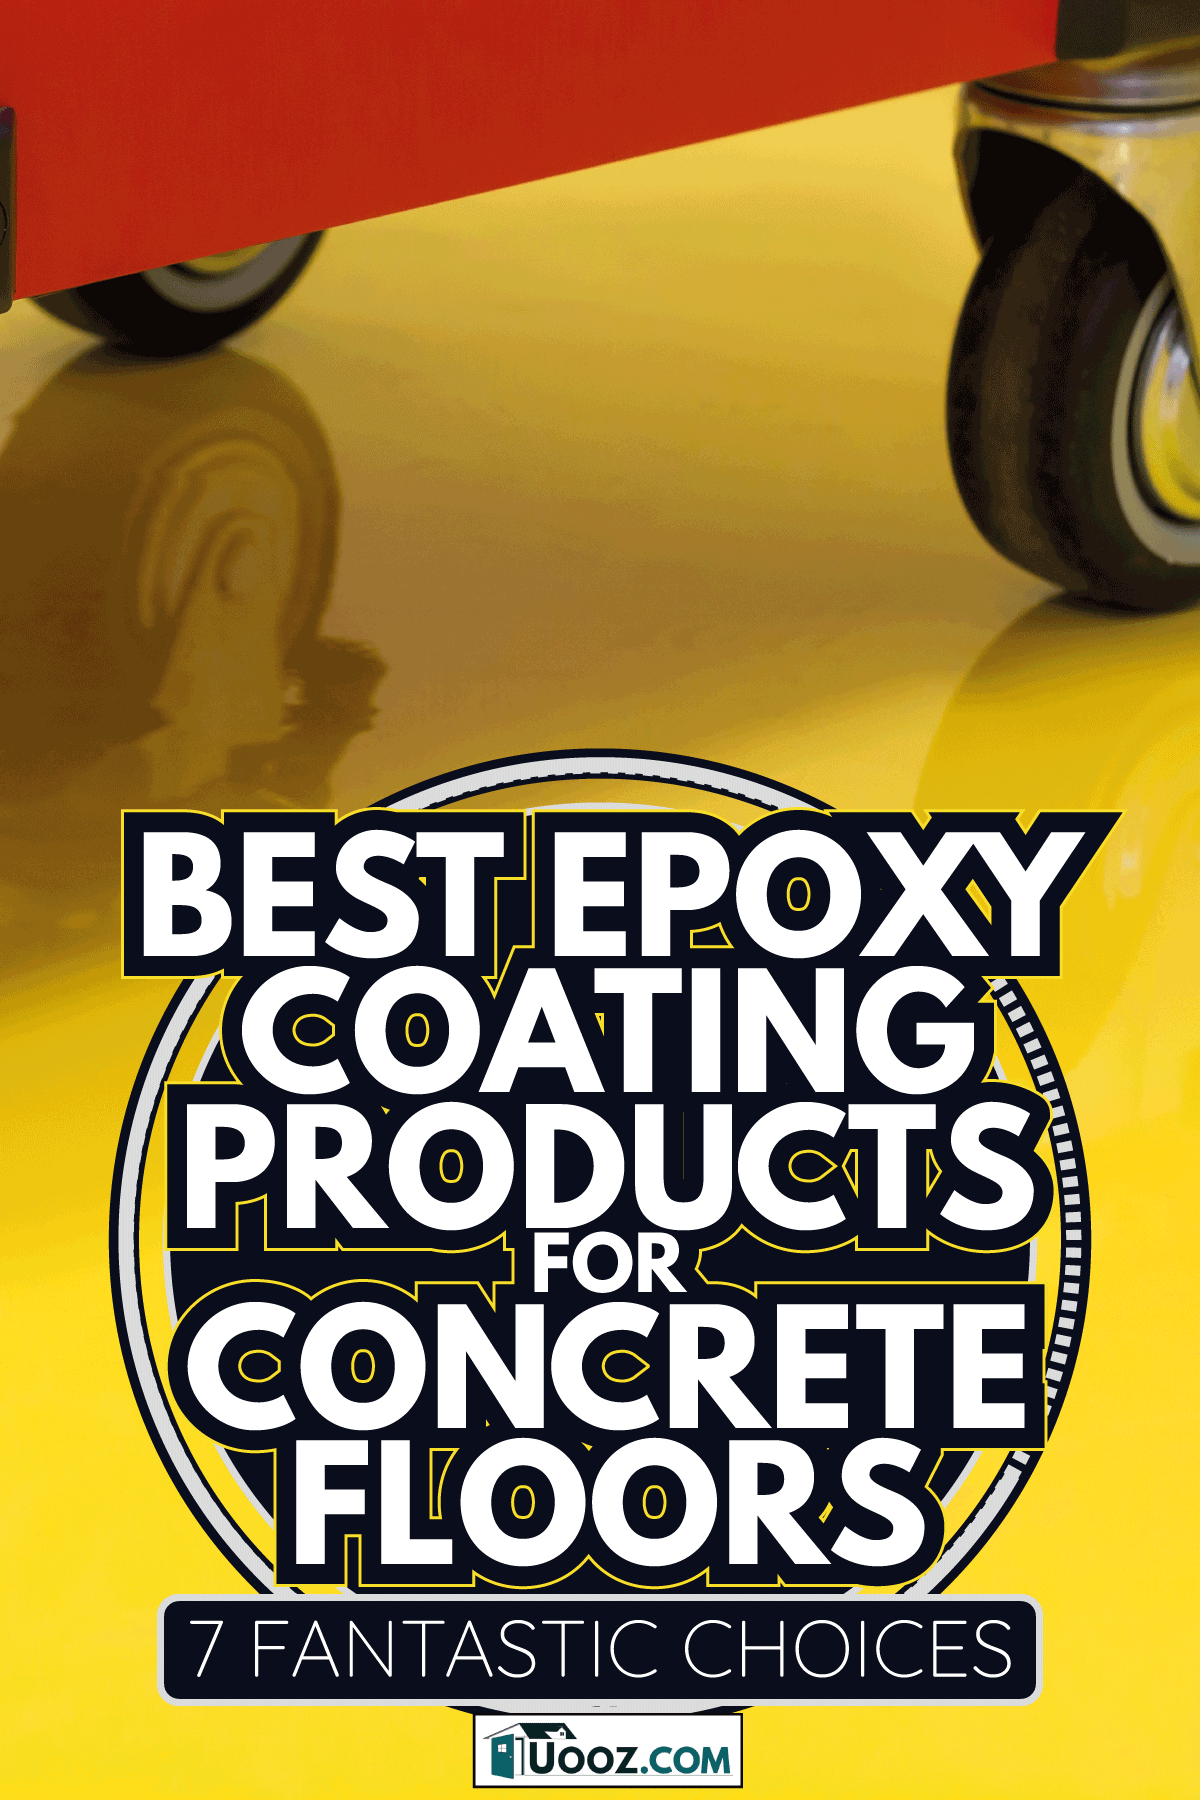 Wheels of Drawer roller tool cabinet on the yellow epoxy floor. Best Epoxy Coating Products For Concrete Floors [7 Fantastic Choices]